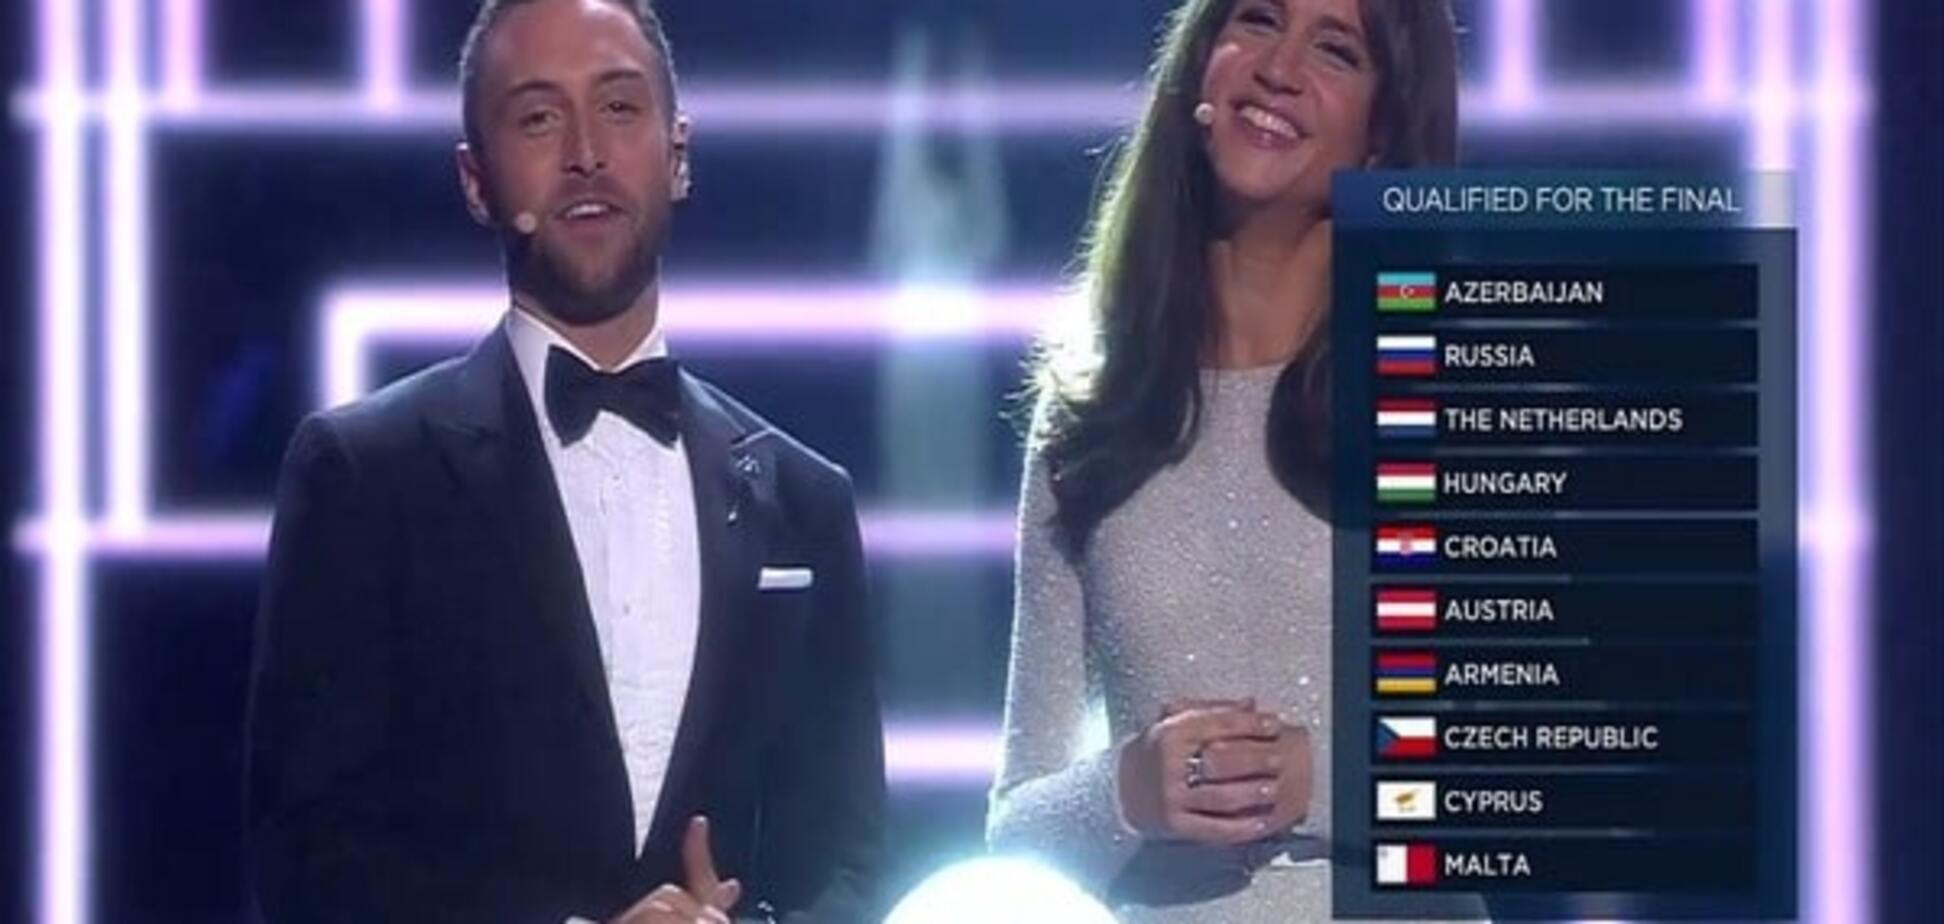 Eurovision 2016 results